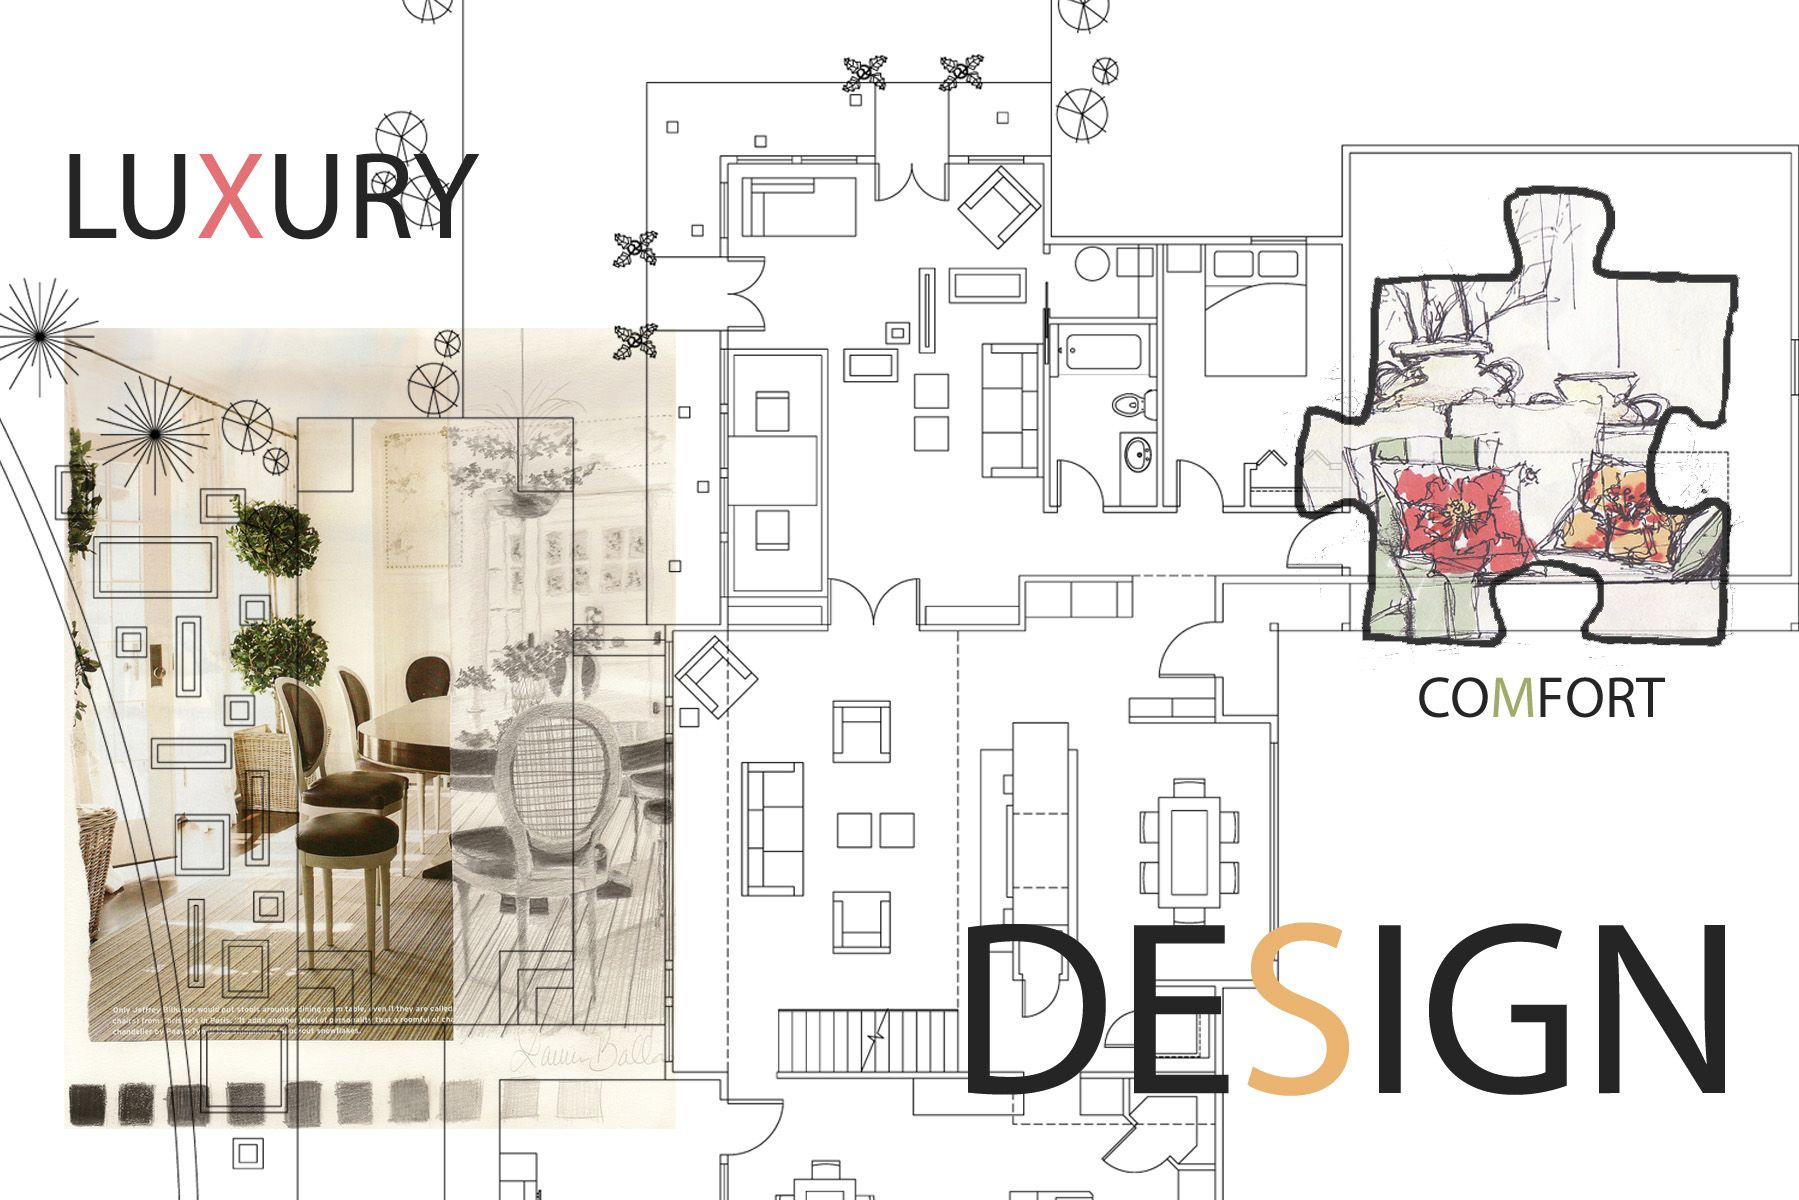 1000+ images about Interior designers at work on Pinterest ...